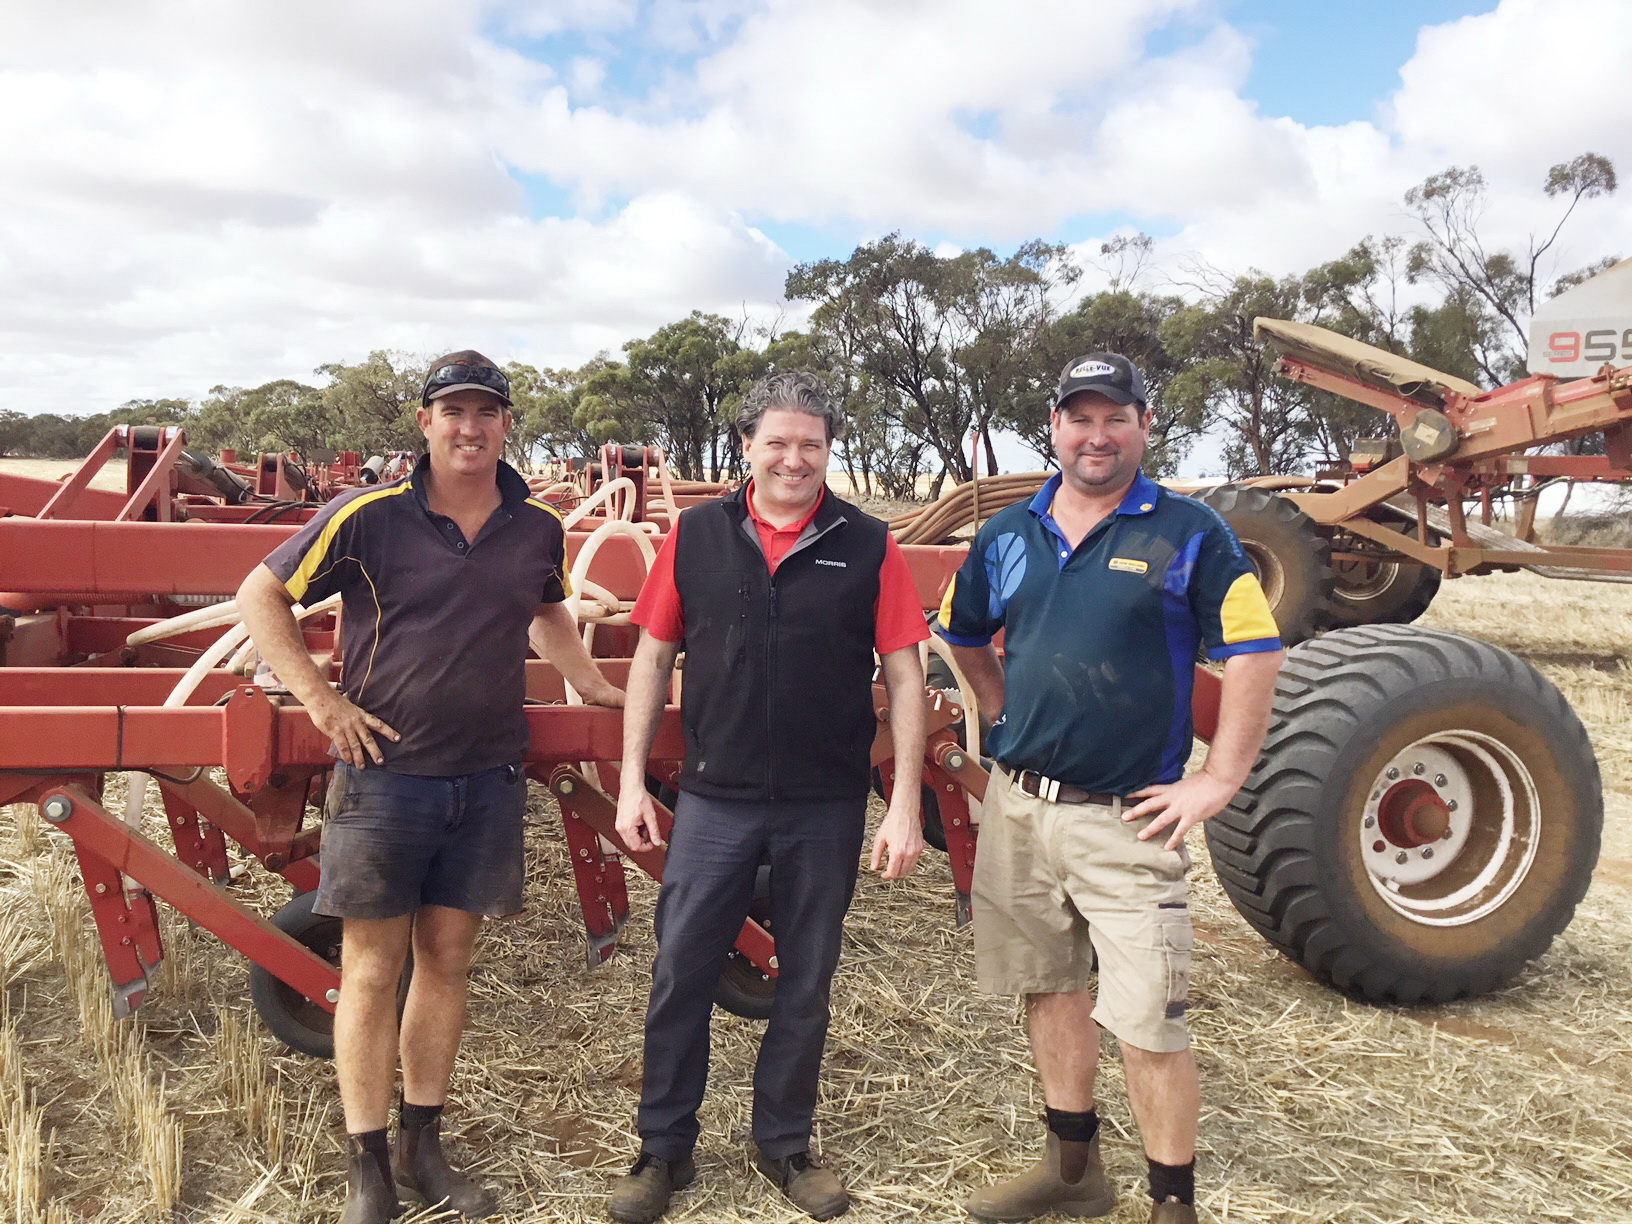 Nathan Williams, Beulah, Morris Industries President and Chief Executive Officer Ben Voss and Justin Ward, of Belle-Vue Trading at Warracknabeal in Victoria